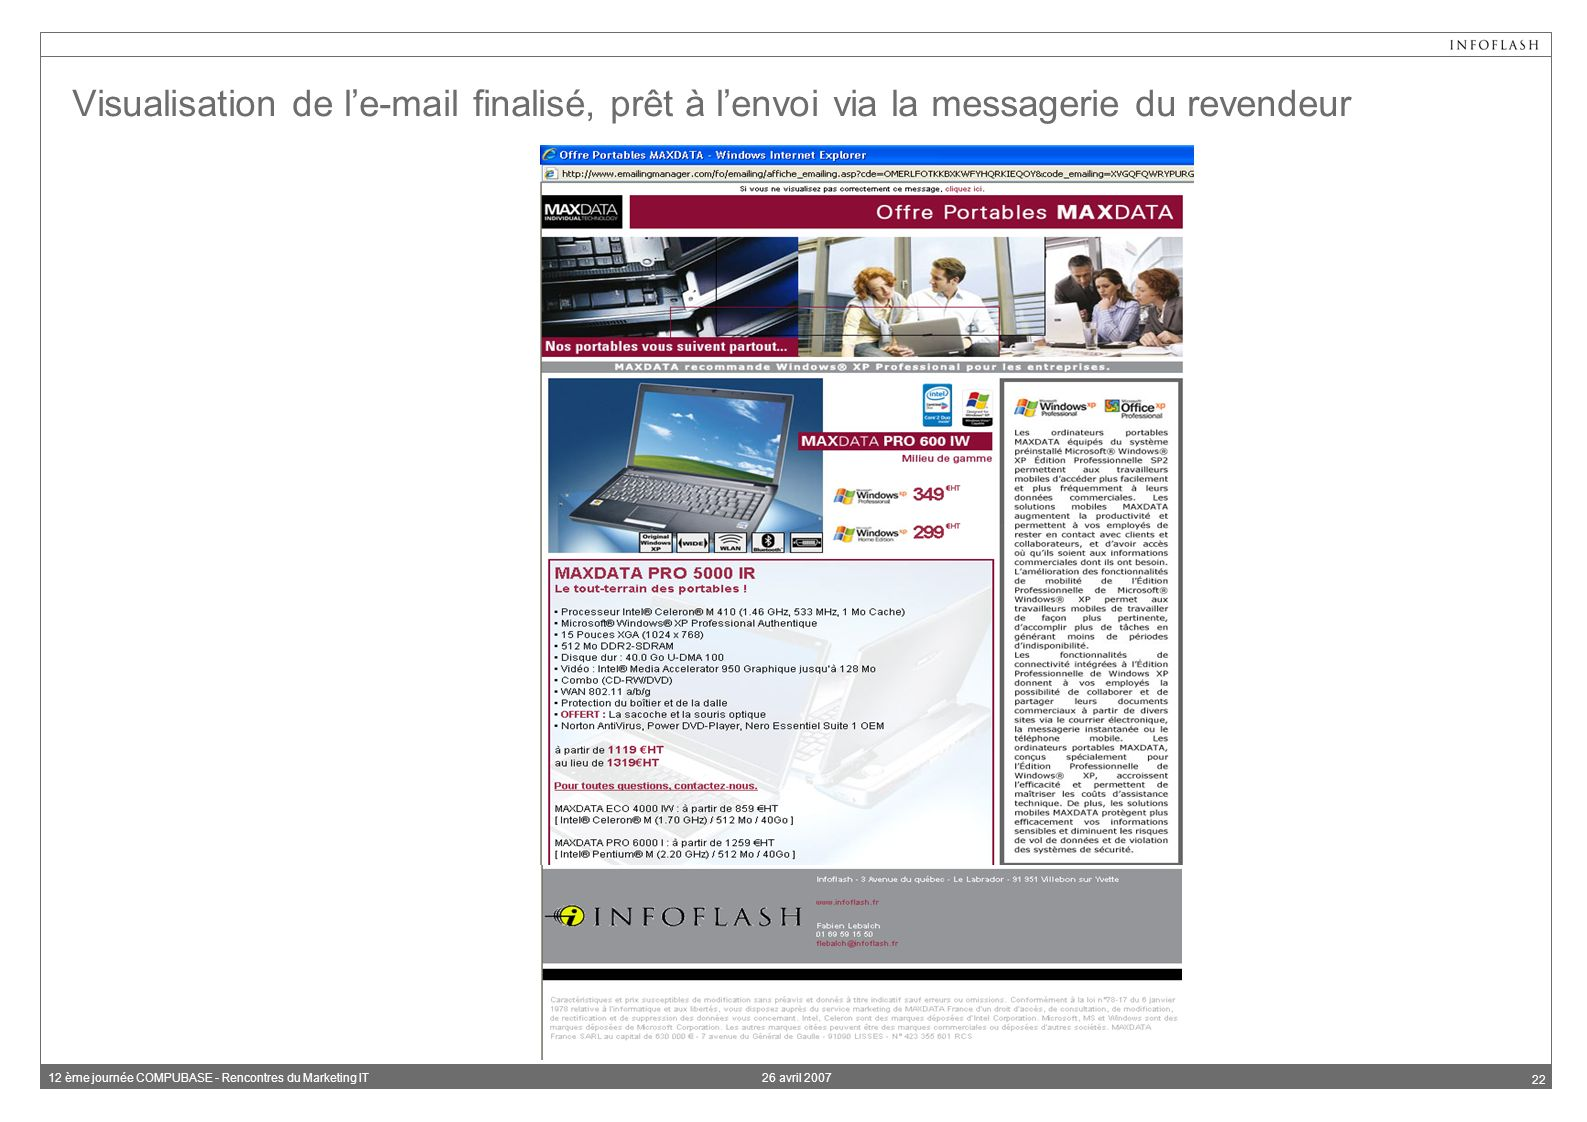 26 avril 200712 ème journée COMPUBASE - Rencontres du Marketing IT 22 Visualisation de le-mail finalisé, prêt à lenvoi via la messagerie du revendeur